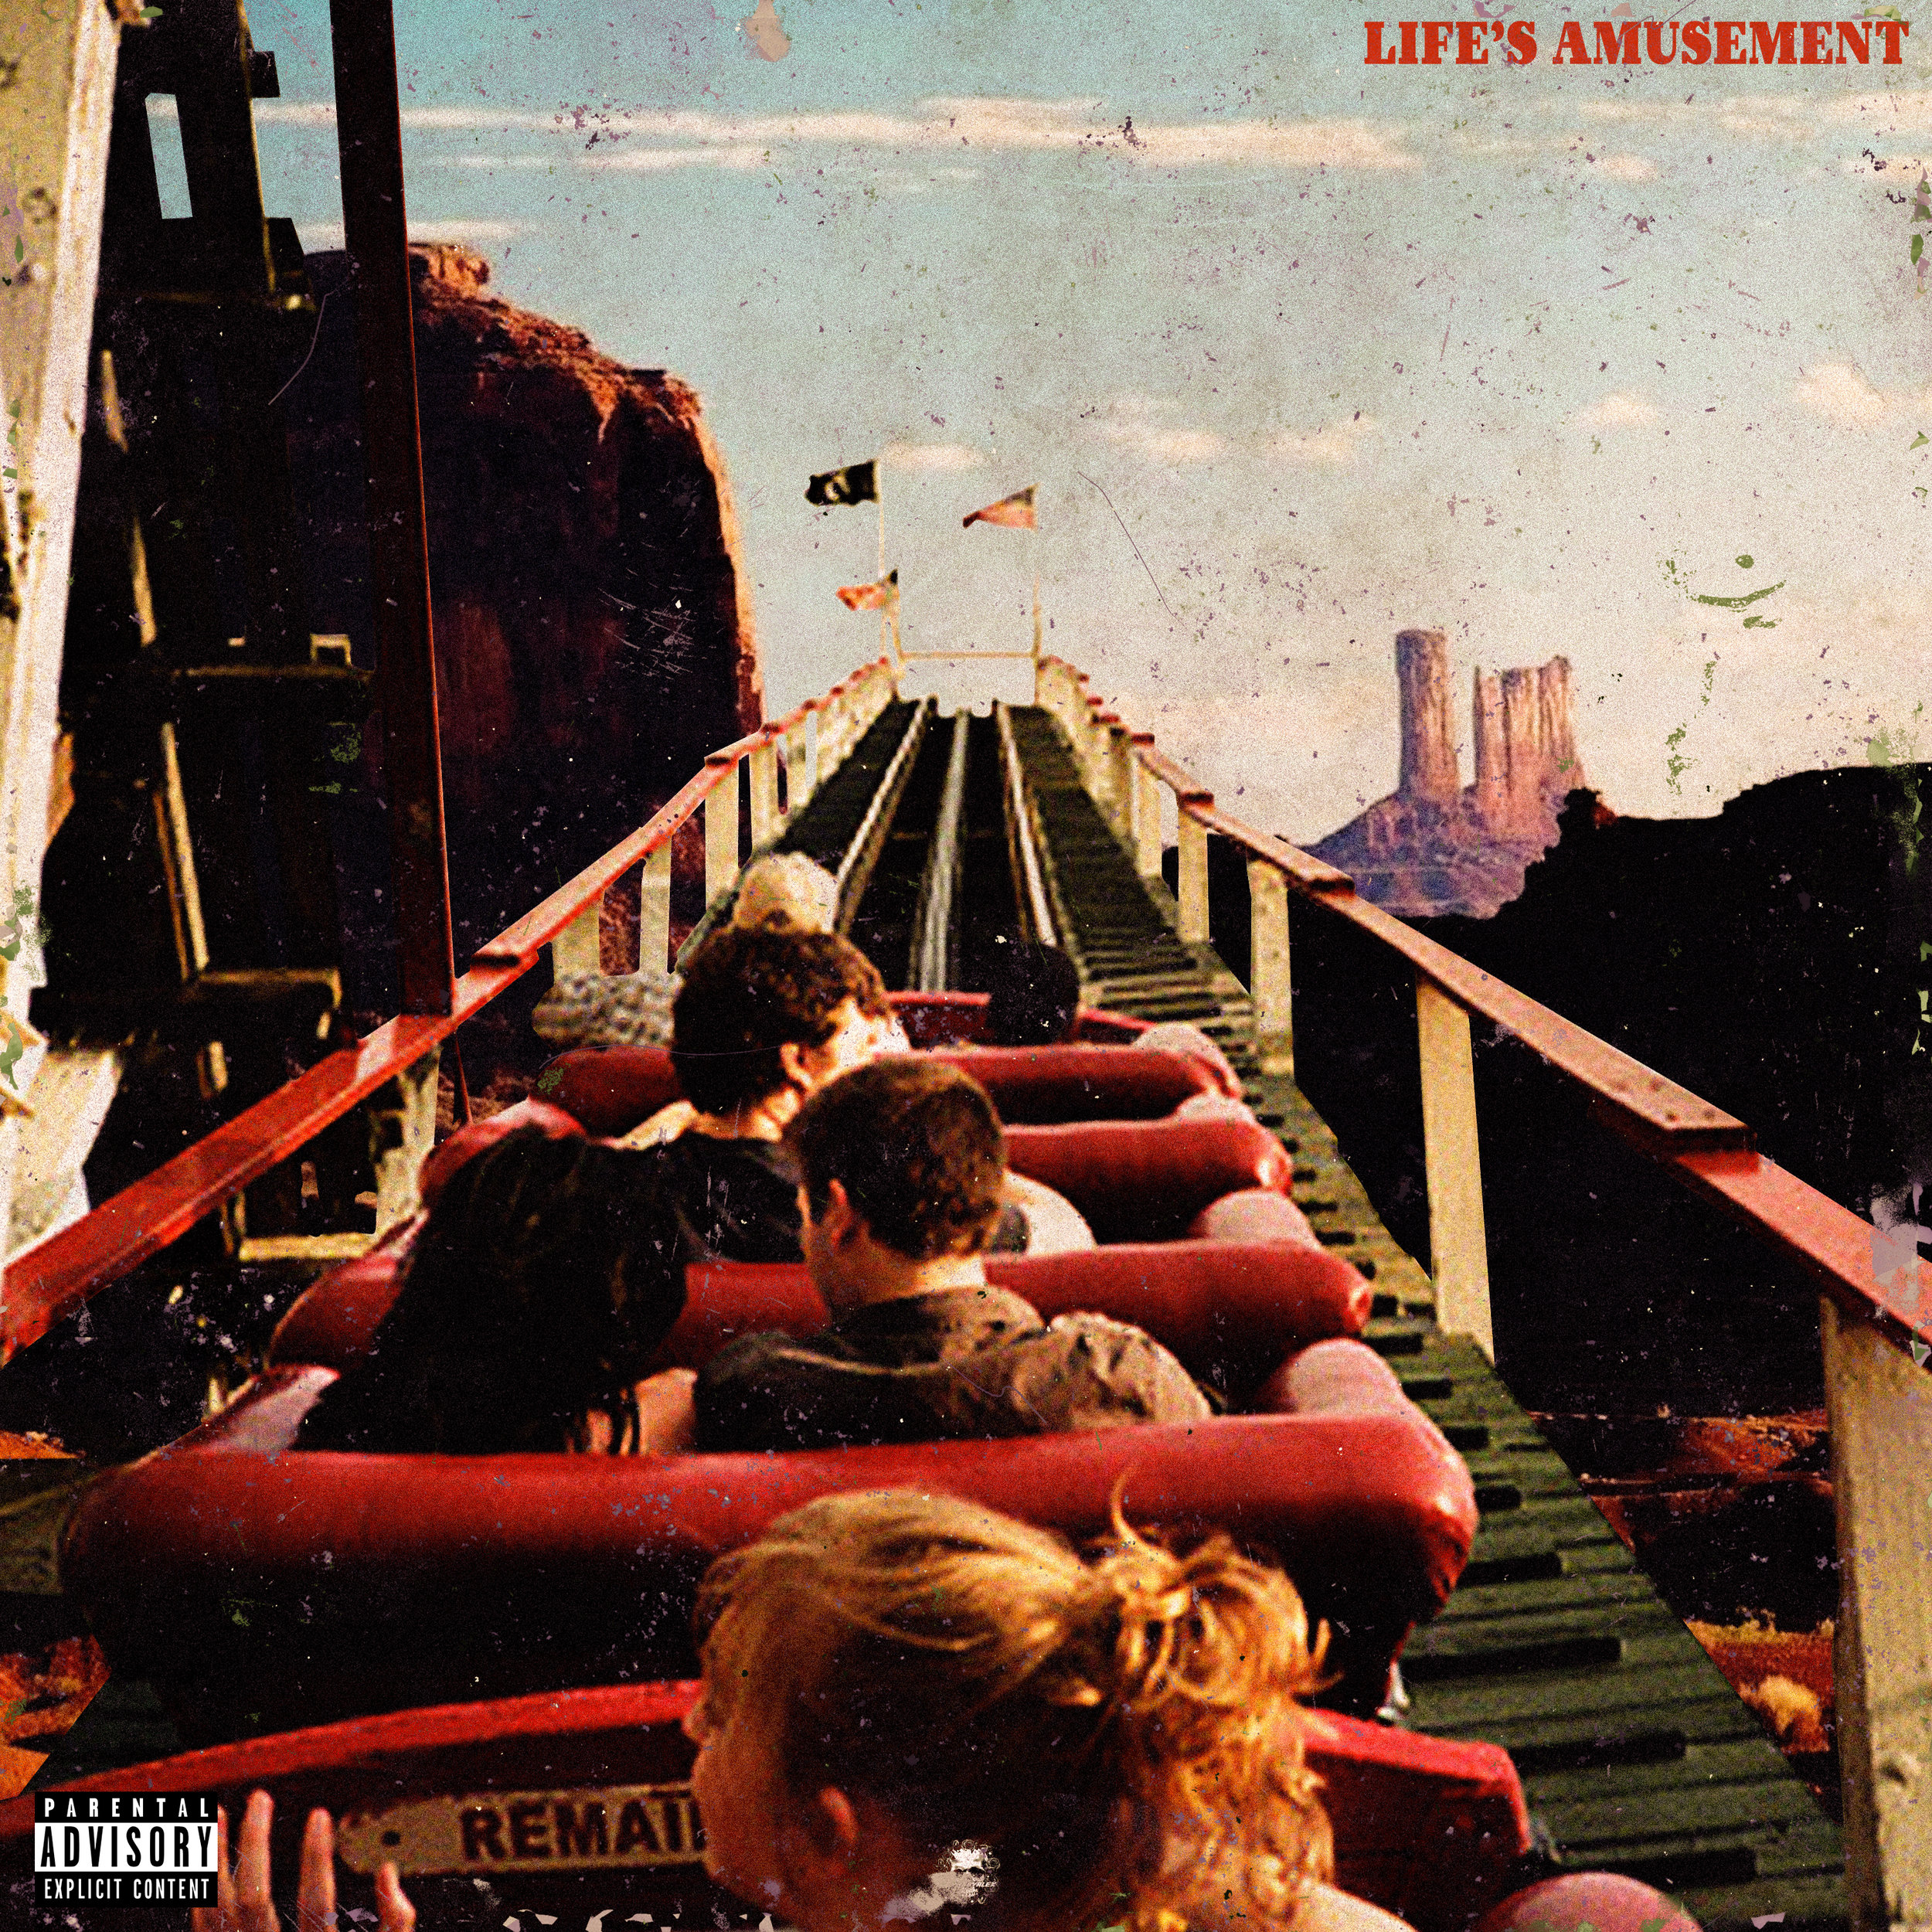 Kid Six 'Life's Amusement' Cover Design